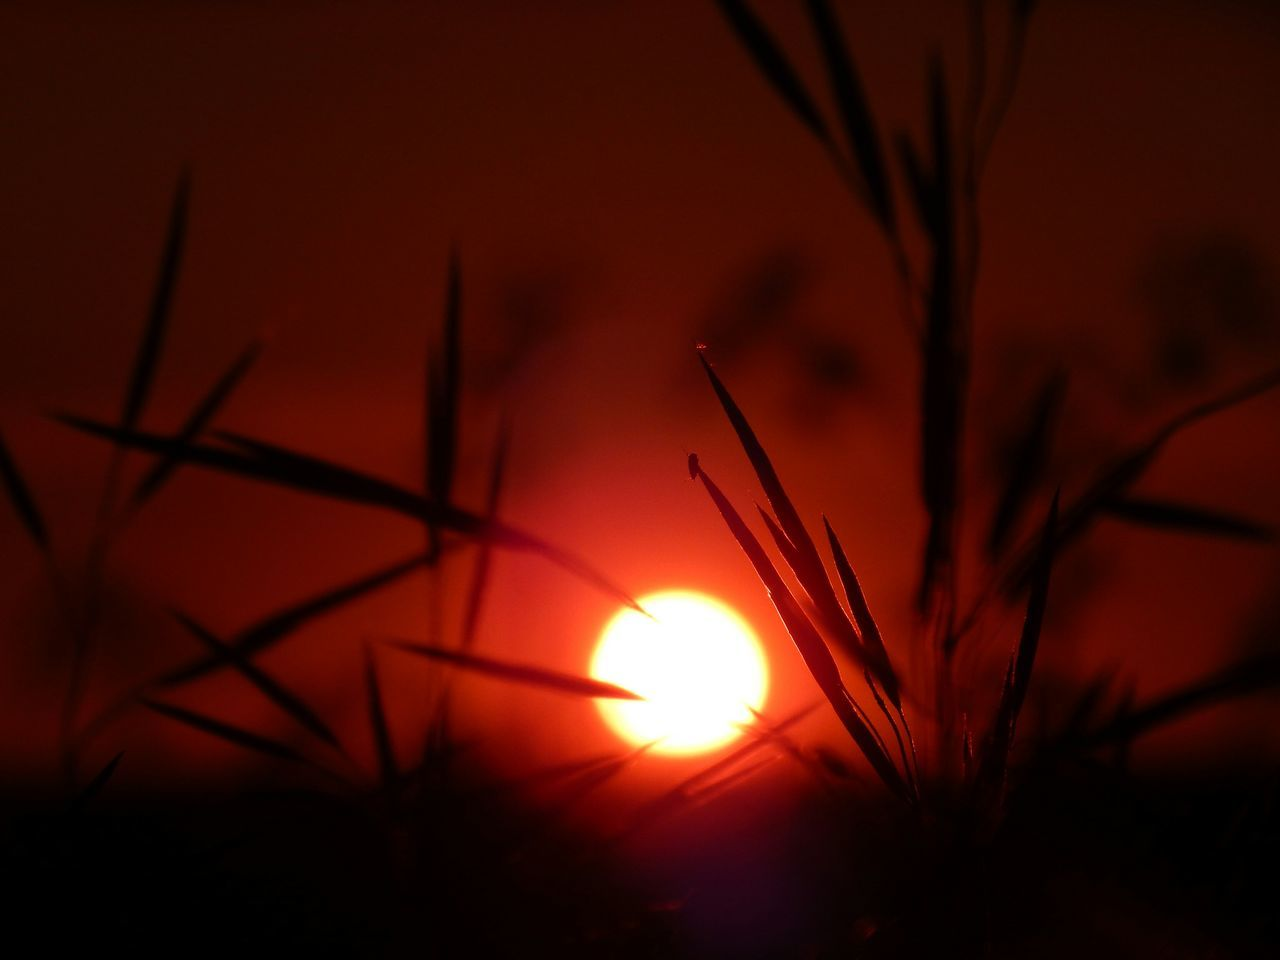 sunset, sun, orange color, nature, silhouette, beauty in nature, sunlight, sky, scenics, no people, outdoors, plant, red, growth, close-up, flower, tree, day